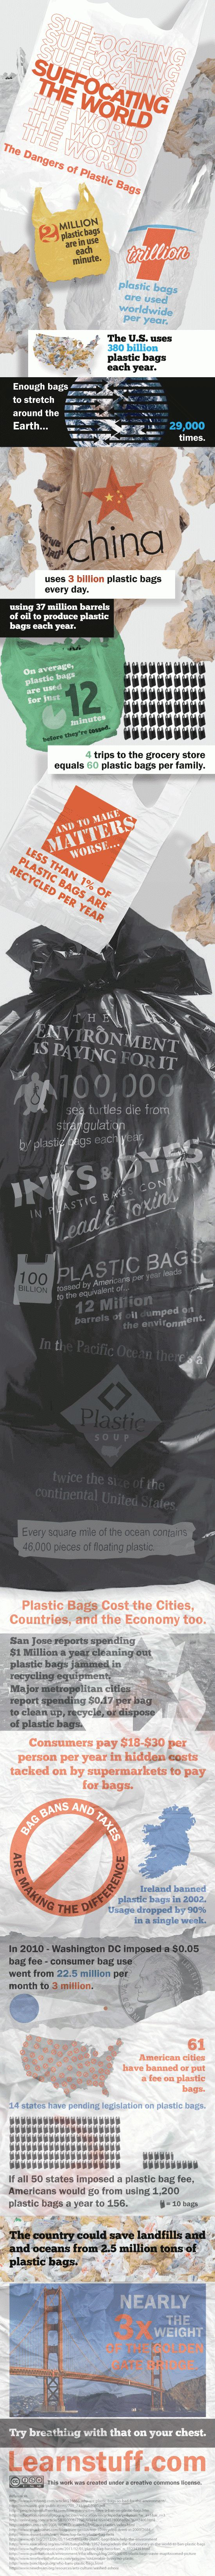 How Are Plastic Bags Suffocating The World?